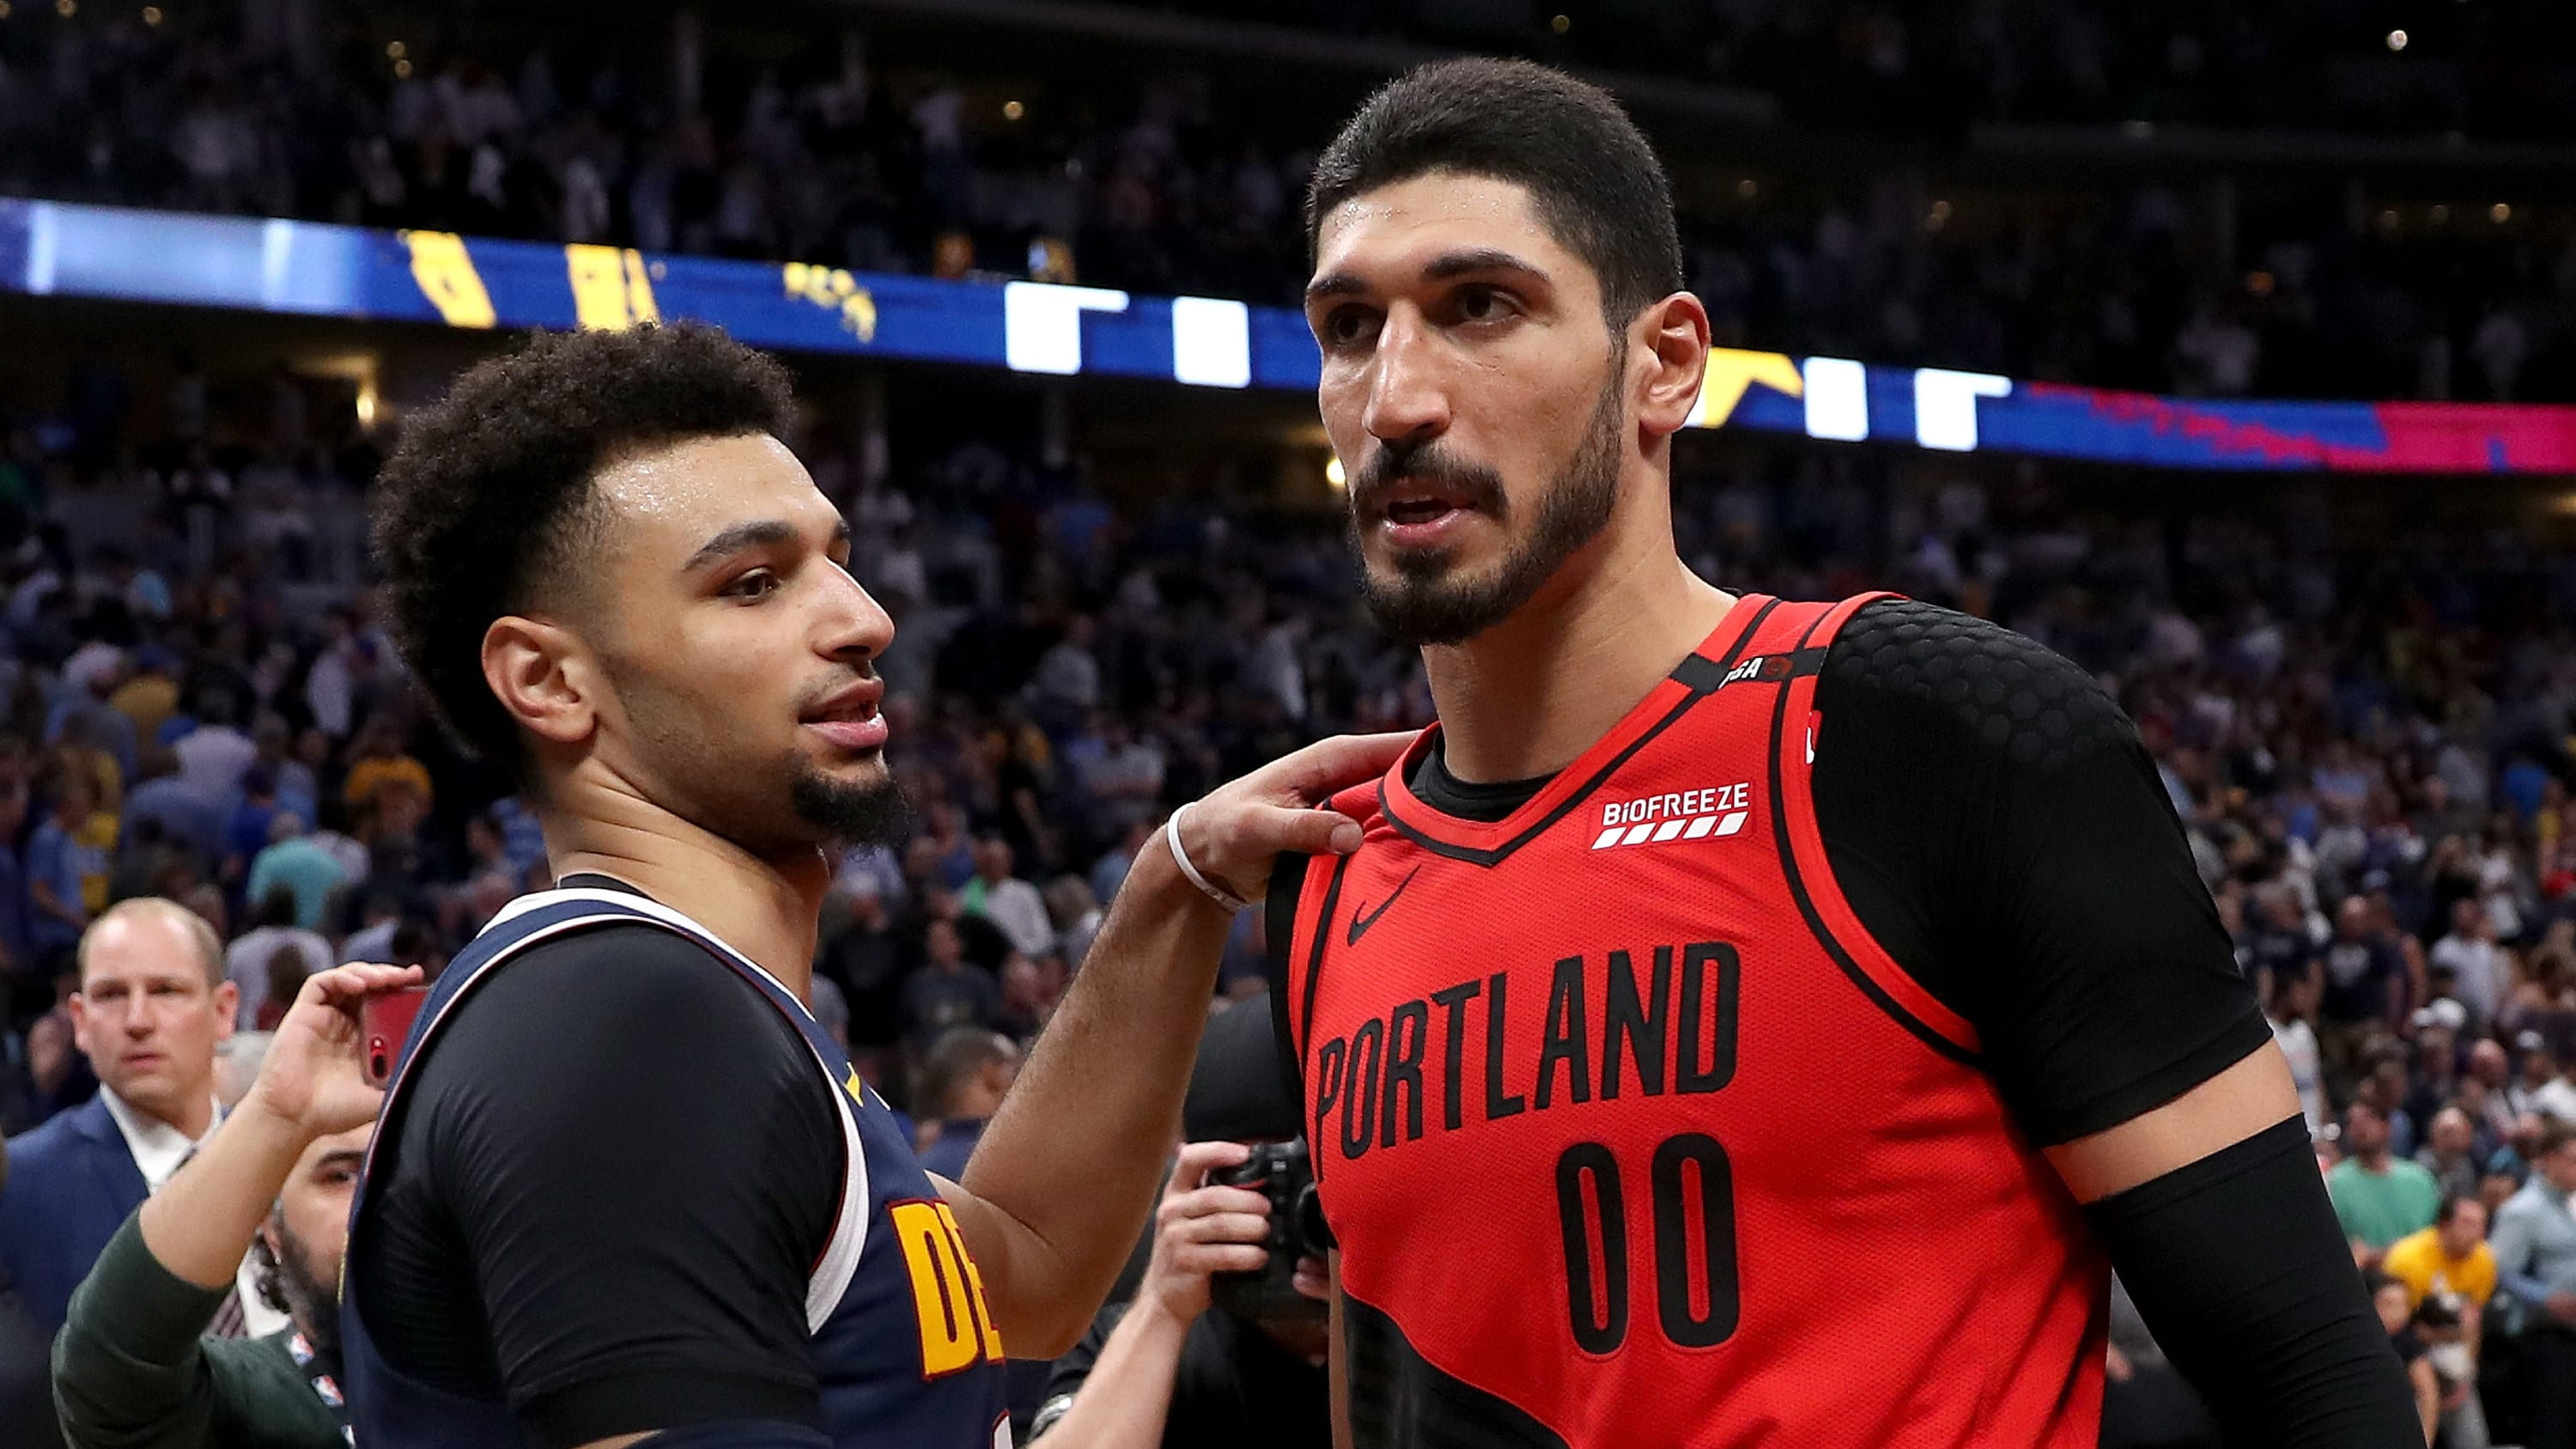 DENVER, COLORADO - MAY 12: Jamal Murray #27 of the Denver Nuggets congratulates Enes Kanter #00 the Portland Trail Blazers on their win during Game Seven of the Western Conference Semi-Finals of the 2019 NBA Playoffs at the Pepsi Center on May 12, 2019 in Denver, Colorado. NOTE TO USER: User expressly acknowledges and agrees that, by downloading and or using this photograph, User is consenting to the terms and conditions of the Getty Images License Agreement. (Photo by Matthew Stockman/Getty Images)